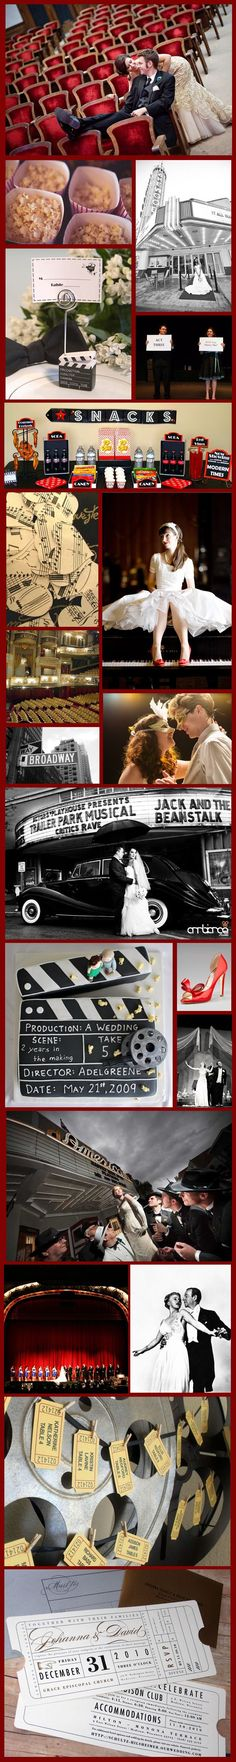 Theater Wedding  Perfect idea for the Tennessee Theatre in Knoxville, or the Capitol Theatre in Maryville!